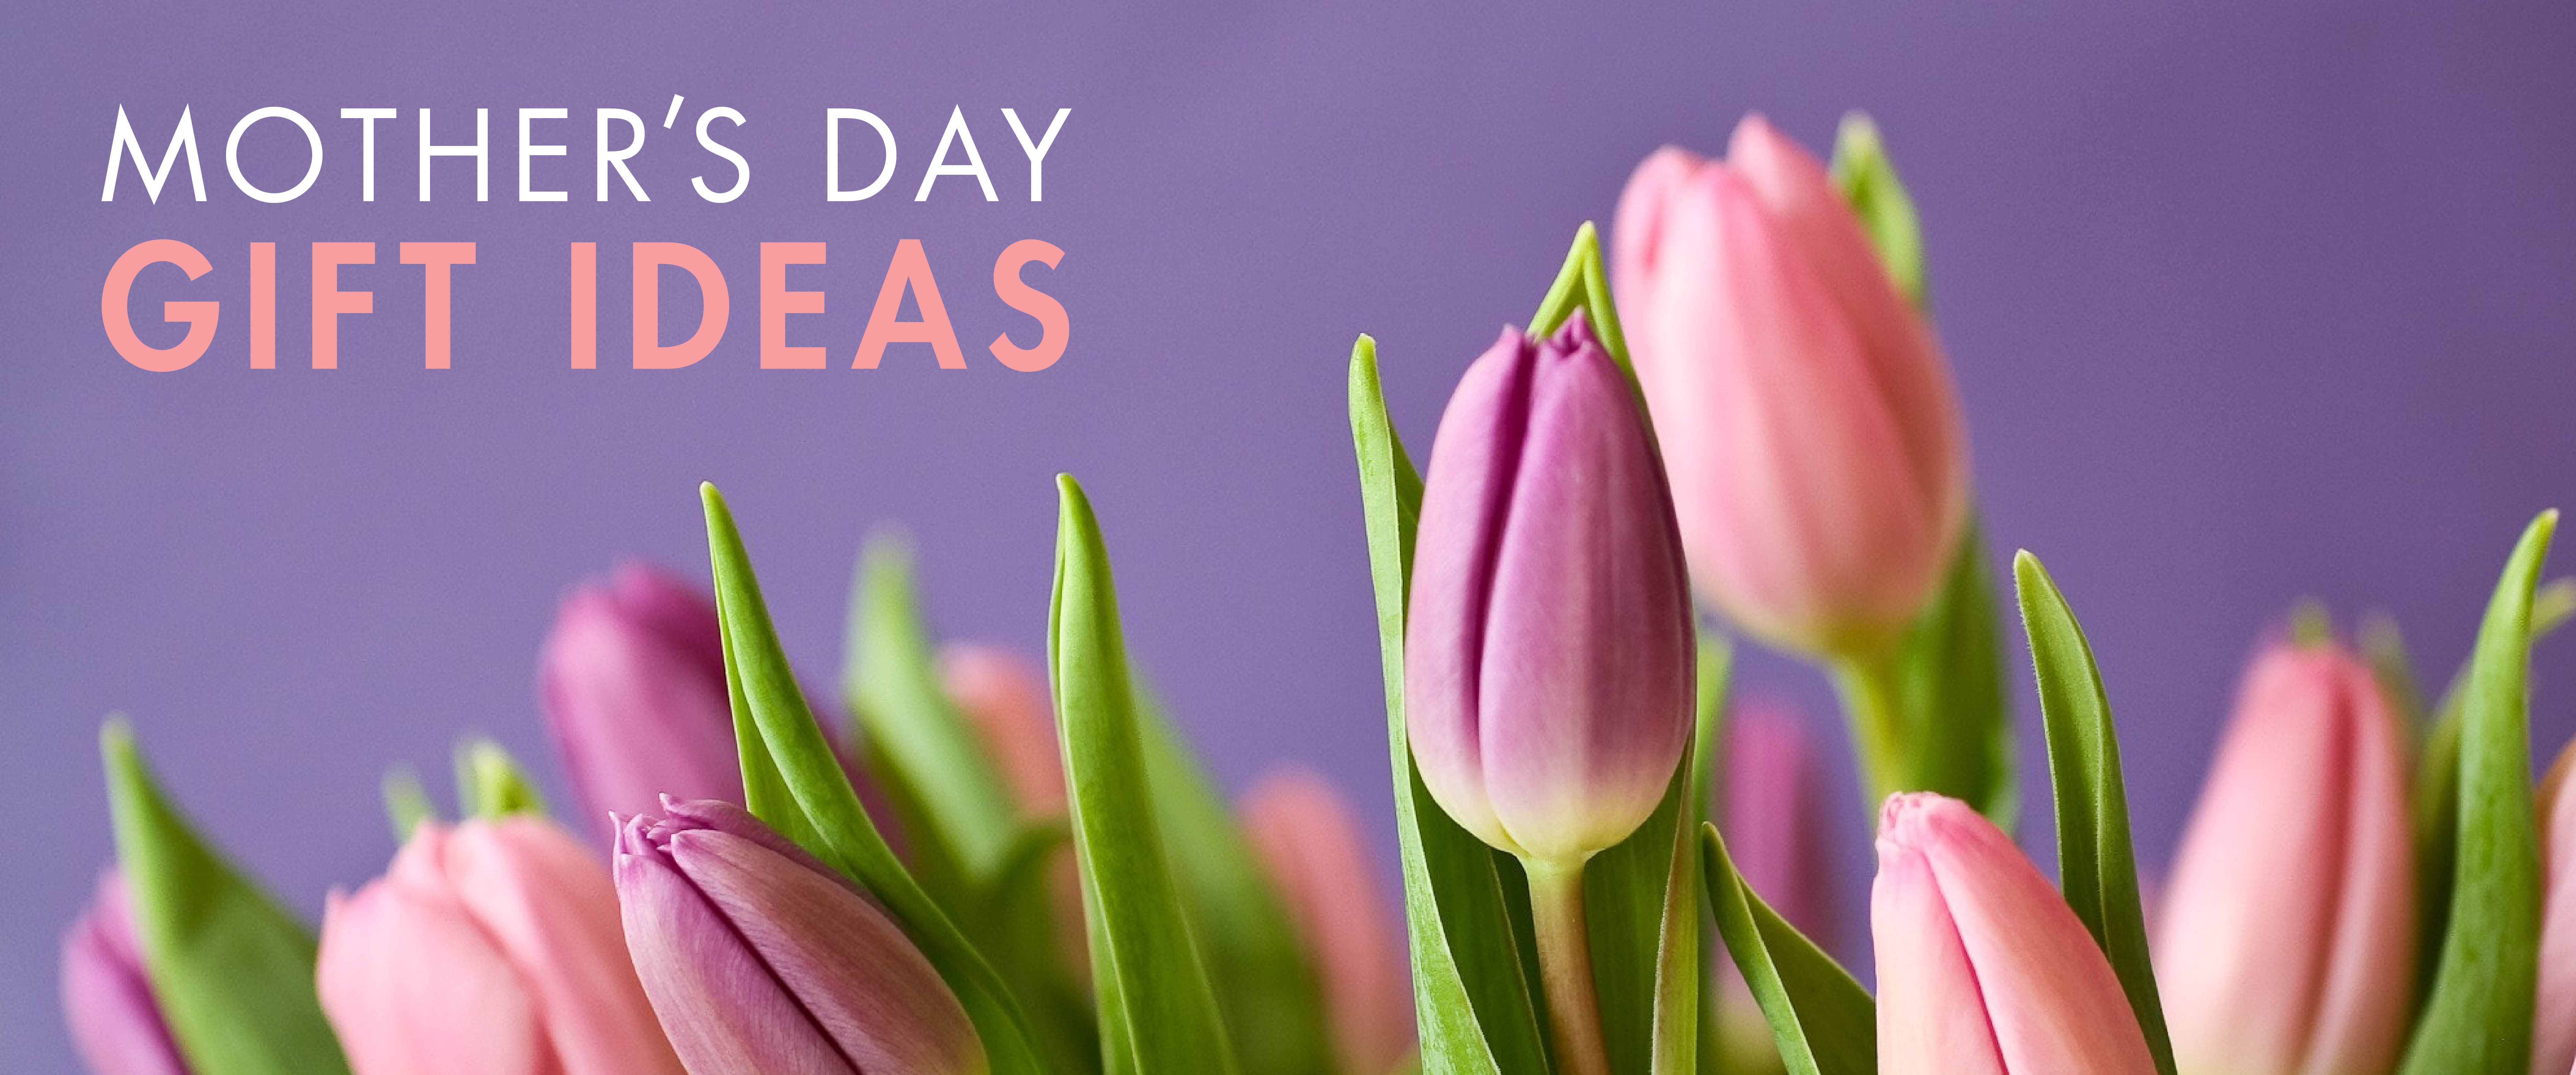 Mother's Day Gift Ideas and Recommendations